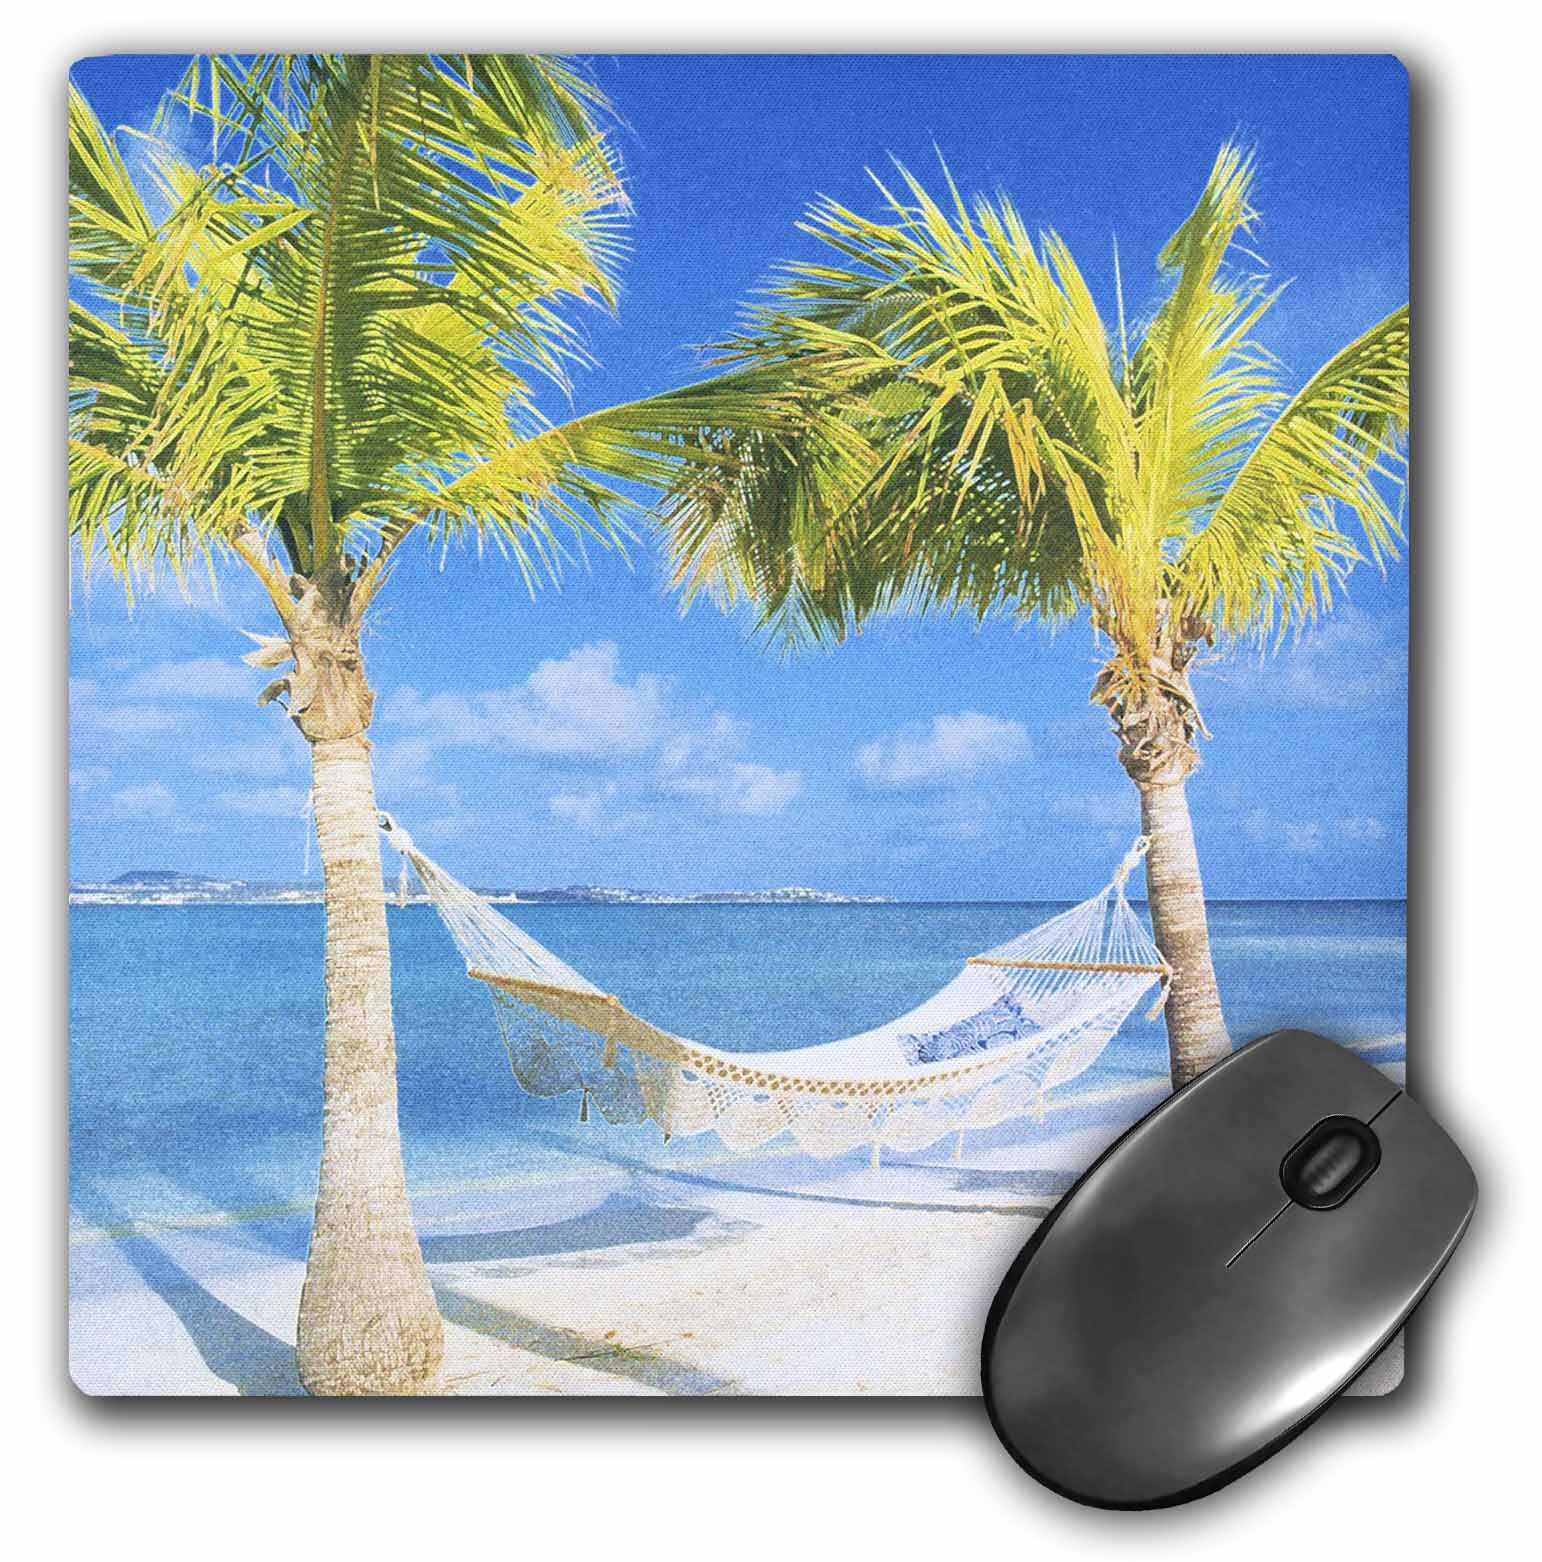 3dRose Palm Trees and Hammock With Ocean, Mouse Pad, 8 by 8 inches